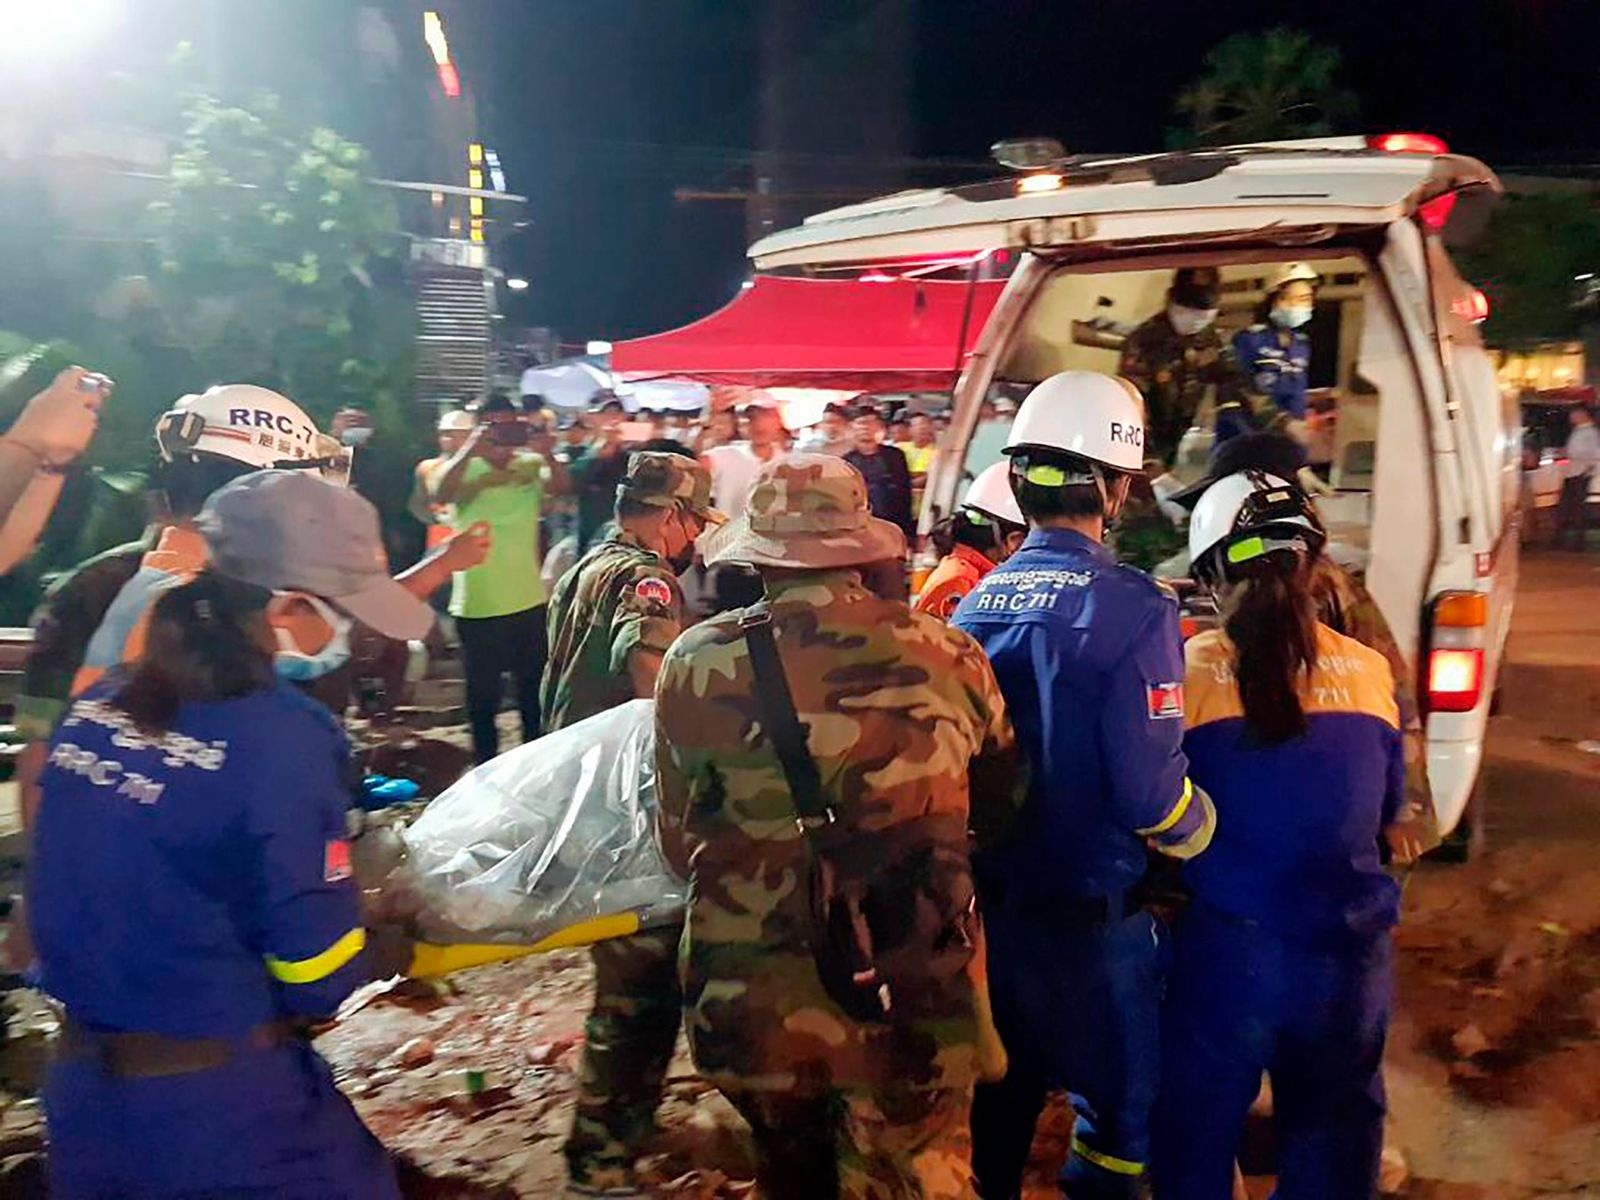 In this Sunday, June 23, 2019, photo provided by Preah Sihanouk provincial authorities, rescuers enter a victim body onto an ambulance at a site of a collapse in Preah Sihanouk province, Cambodia.{ } (Preah Sihanouk provincial authorities via AP)